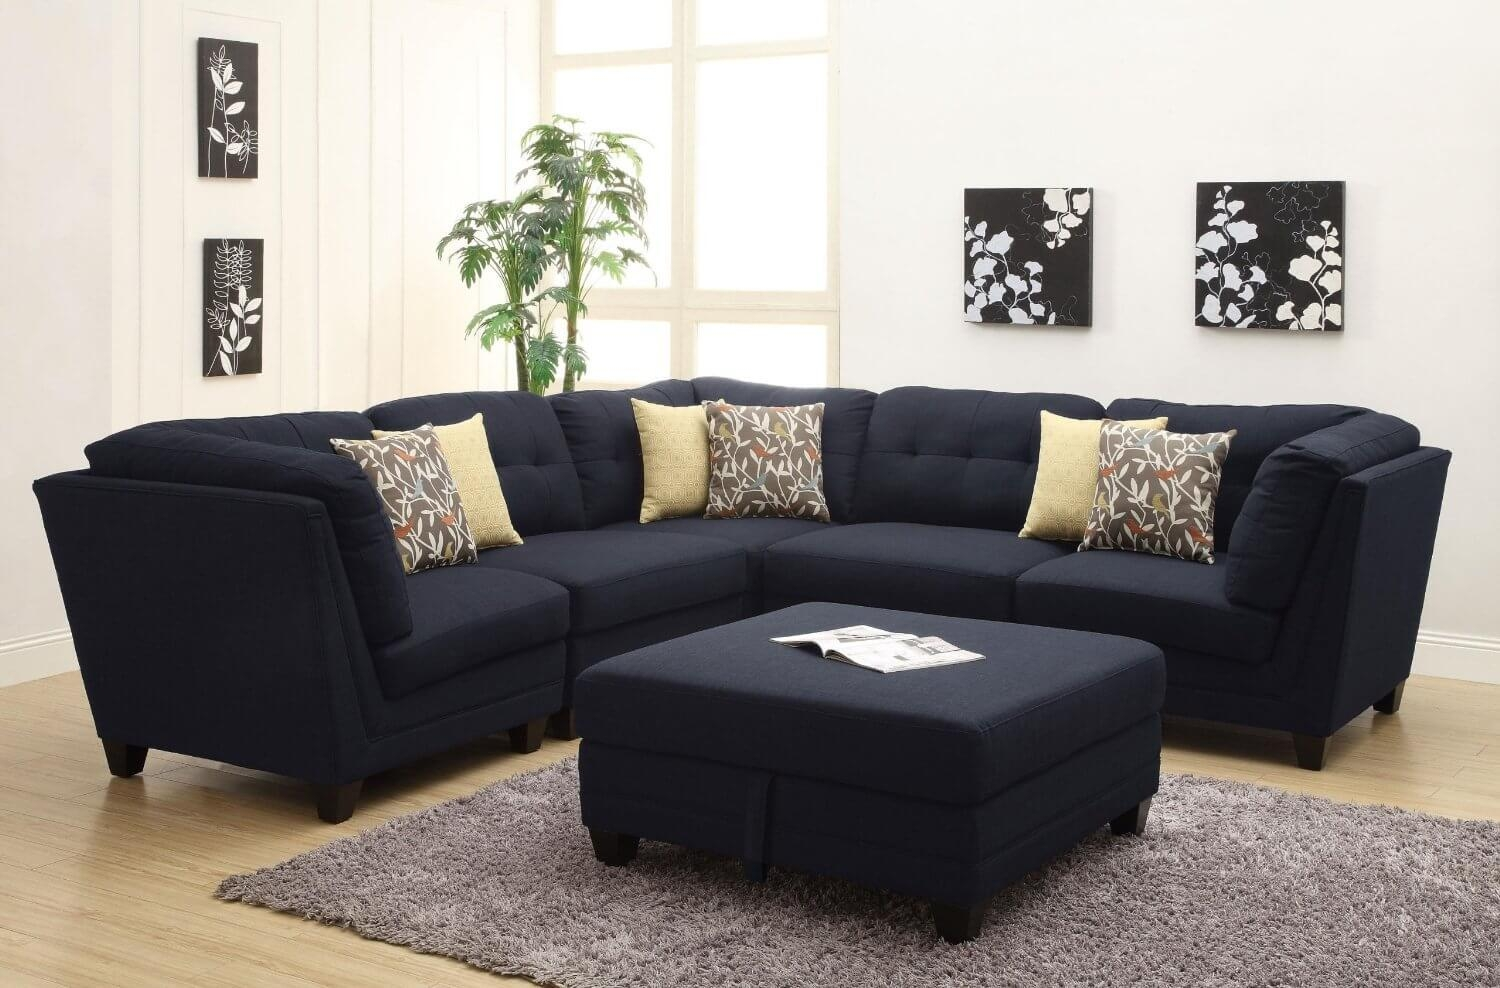 Sofas Tulsa – Home Design Ideas And Pictures Throughout Camel Colored Sectional Sofa (Image 14 of 15)